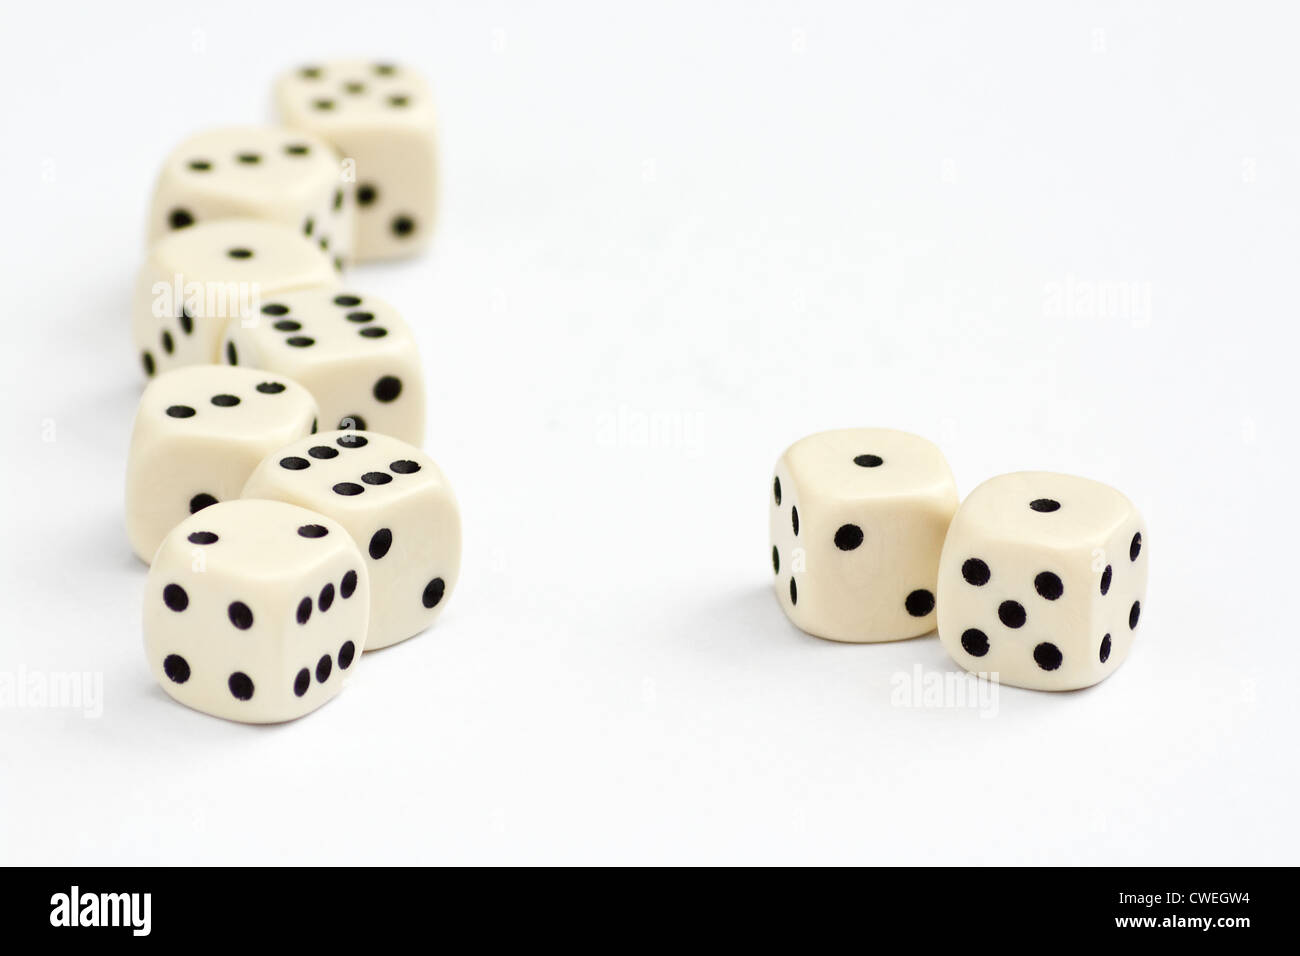 White dice frame edge with focus on double one or snake eyes - Stock Image